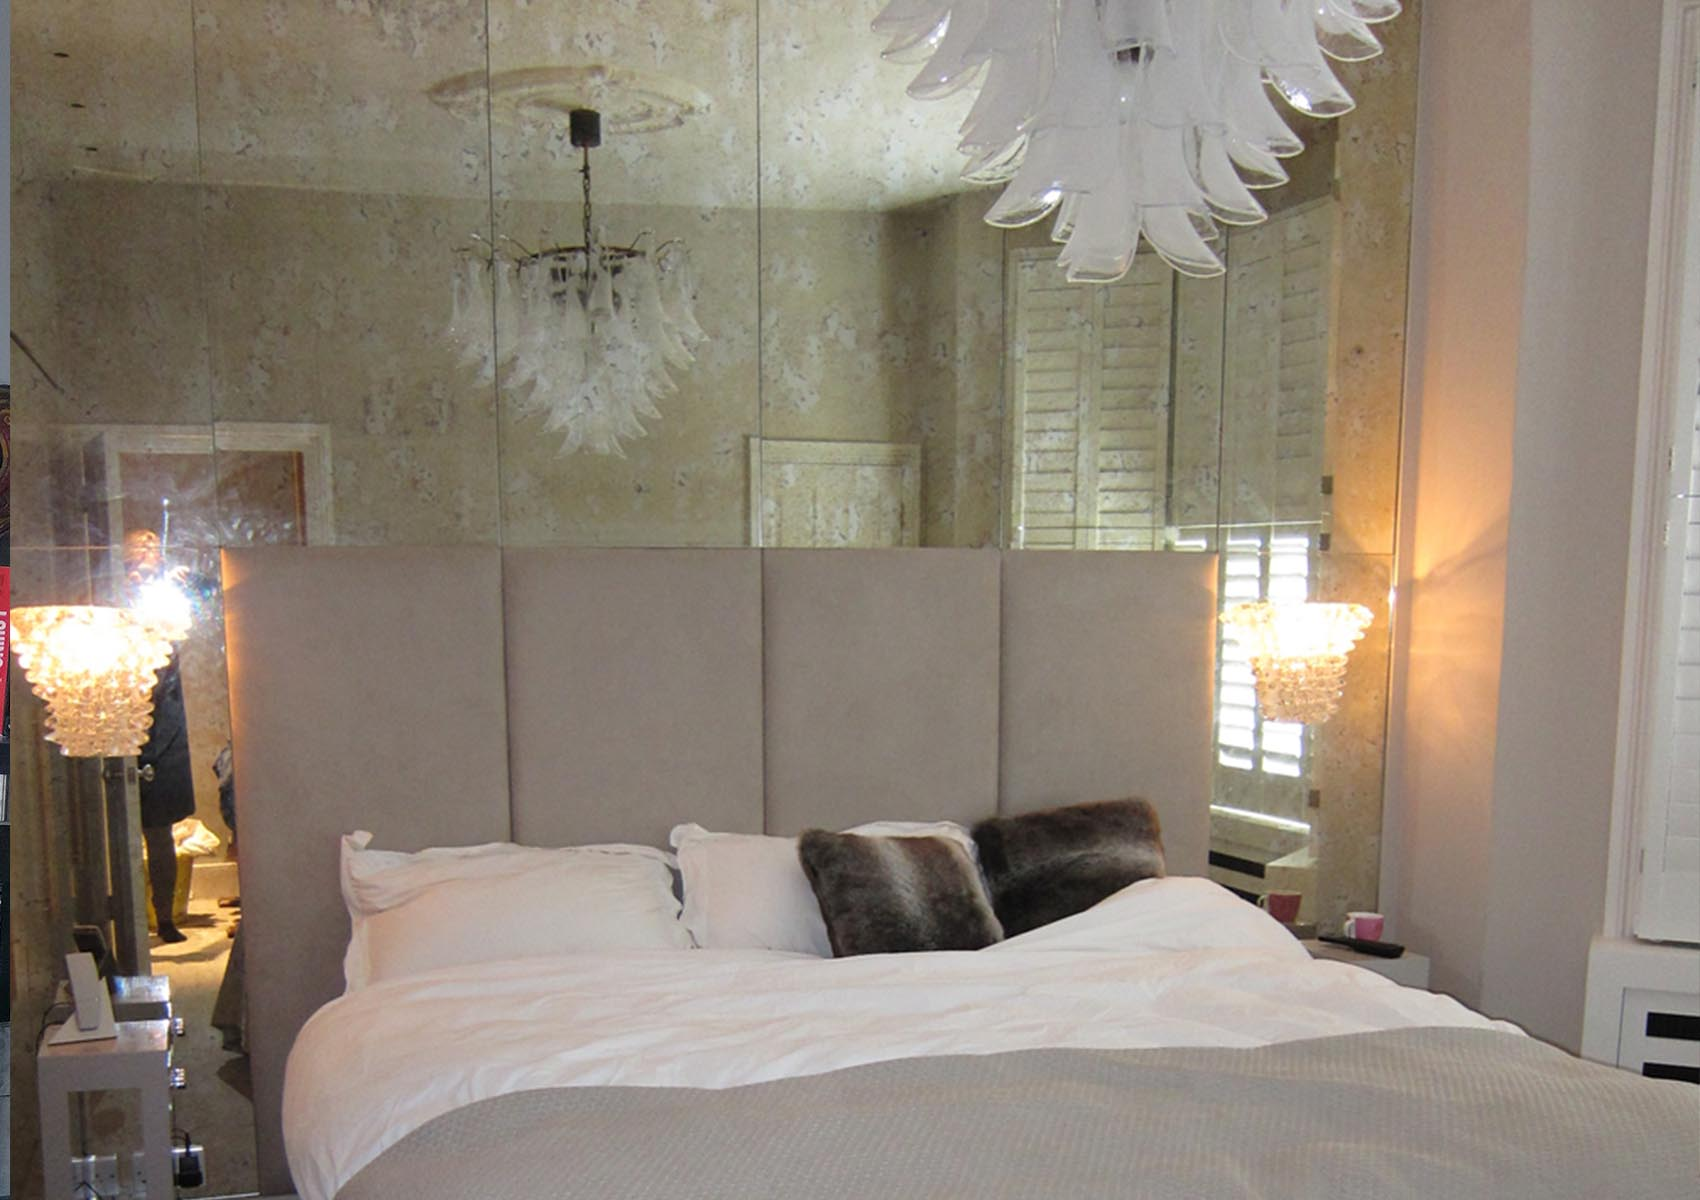 Bedroom Wall Feature in panels